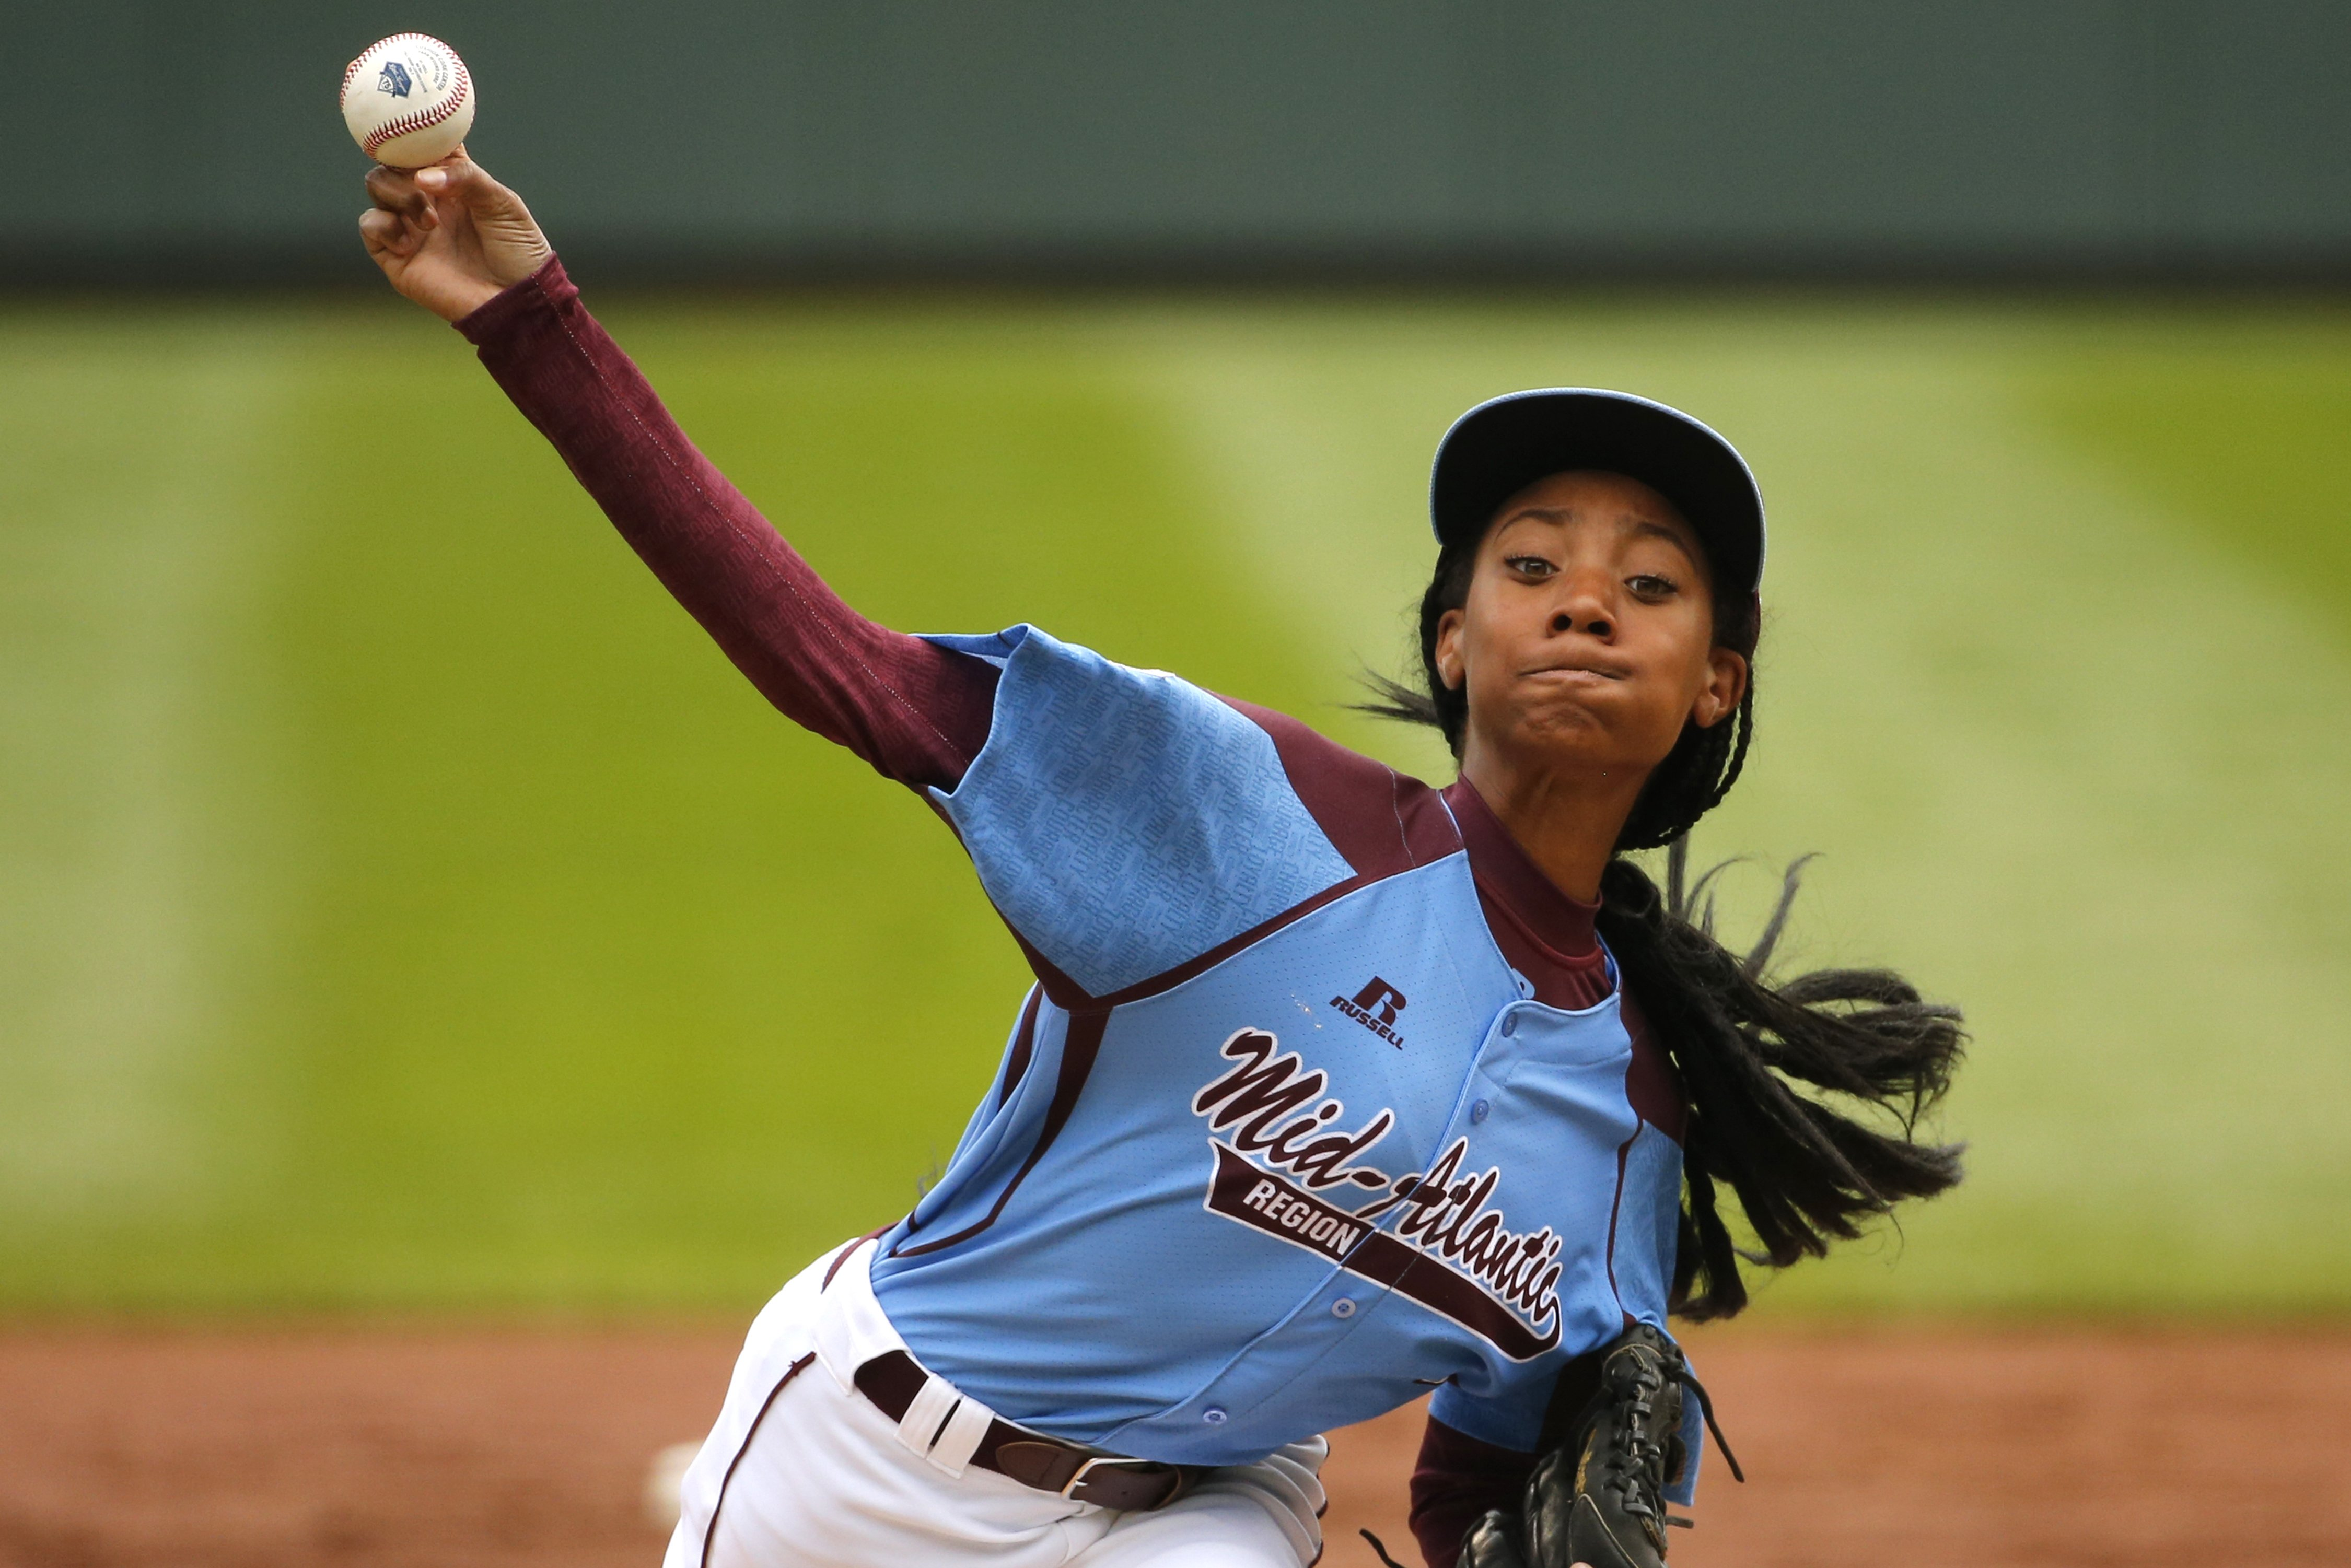 Mo'ne Davis delivers in the first inning against Nashville, Tenn. during a baseball game in United States pool play at the Little League World Series tournament in South Williamsport, Pa., Aug. 15, 2014.